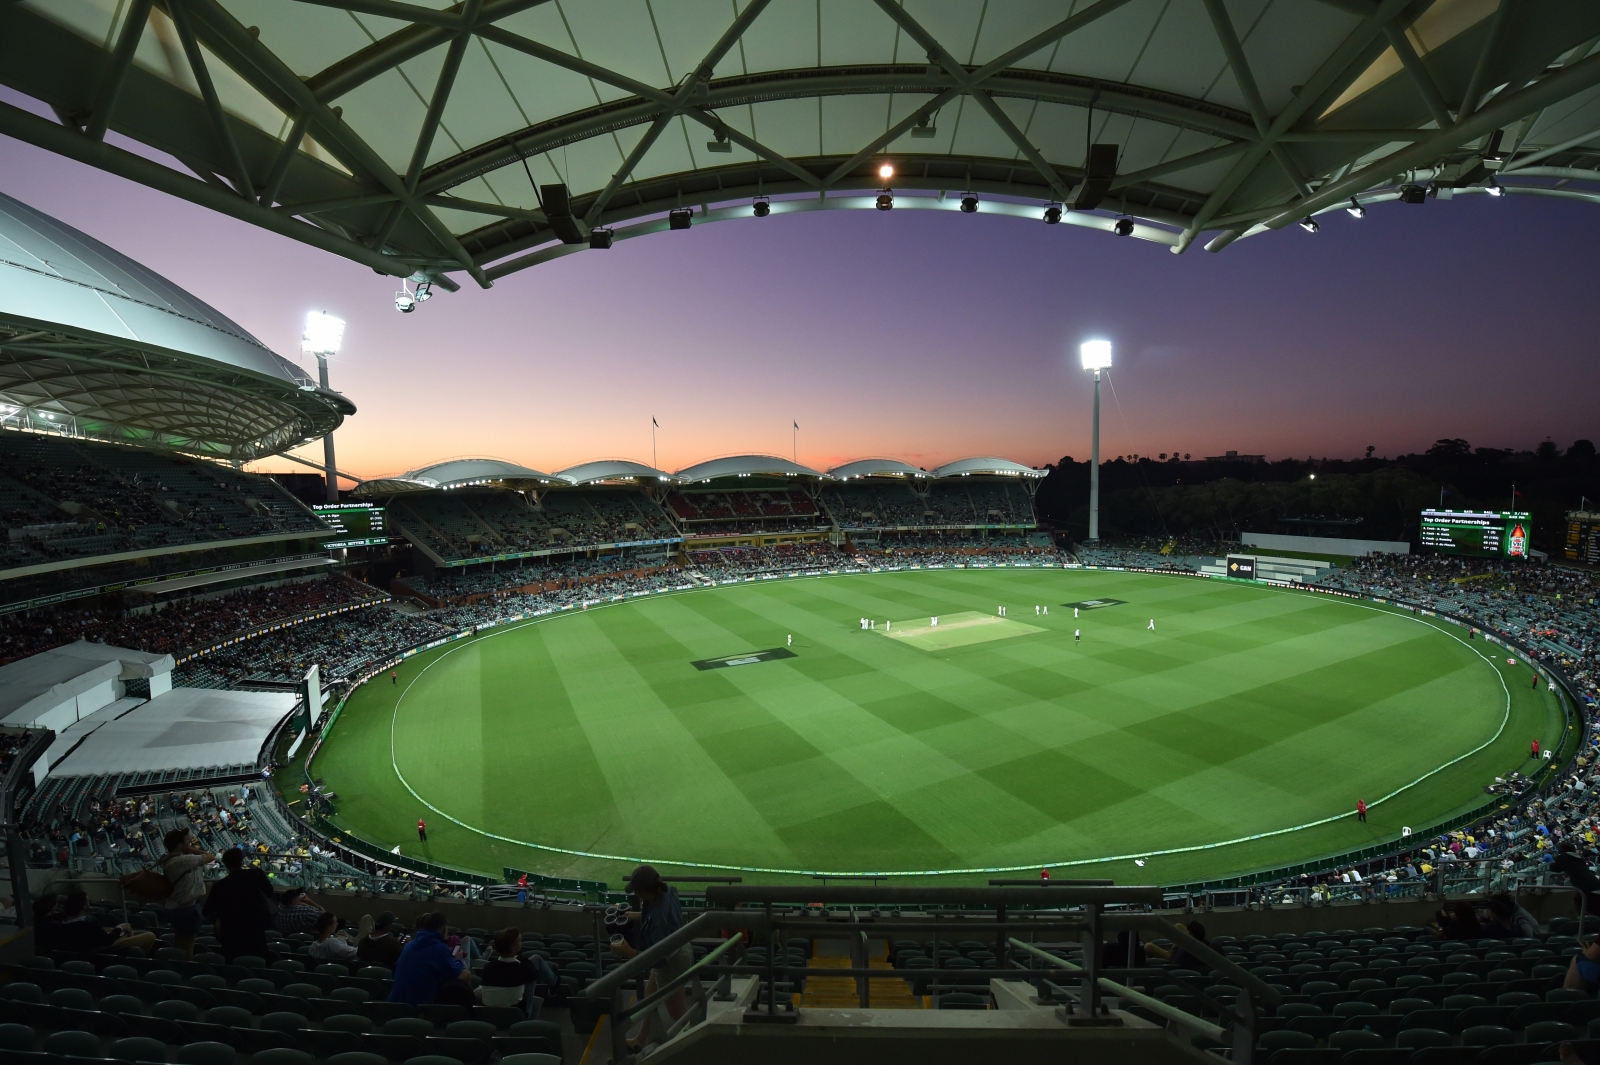 The Adelaide Oval